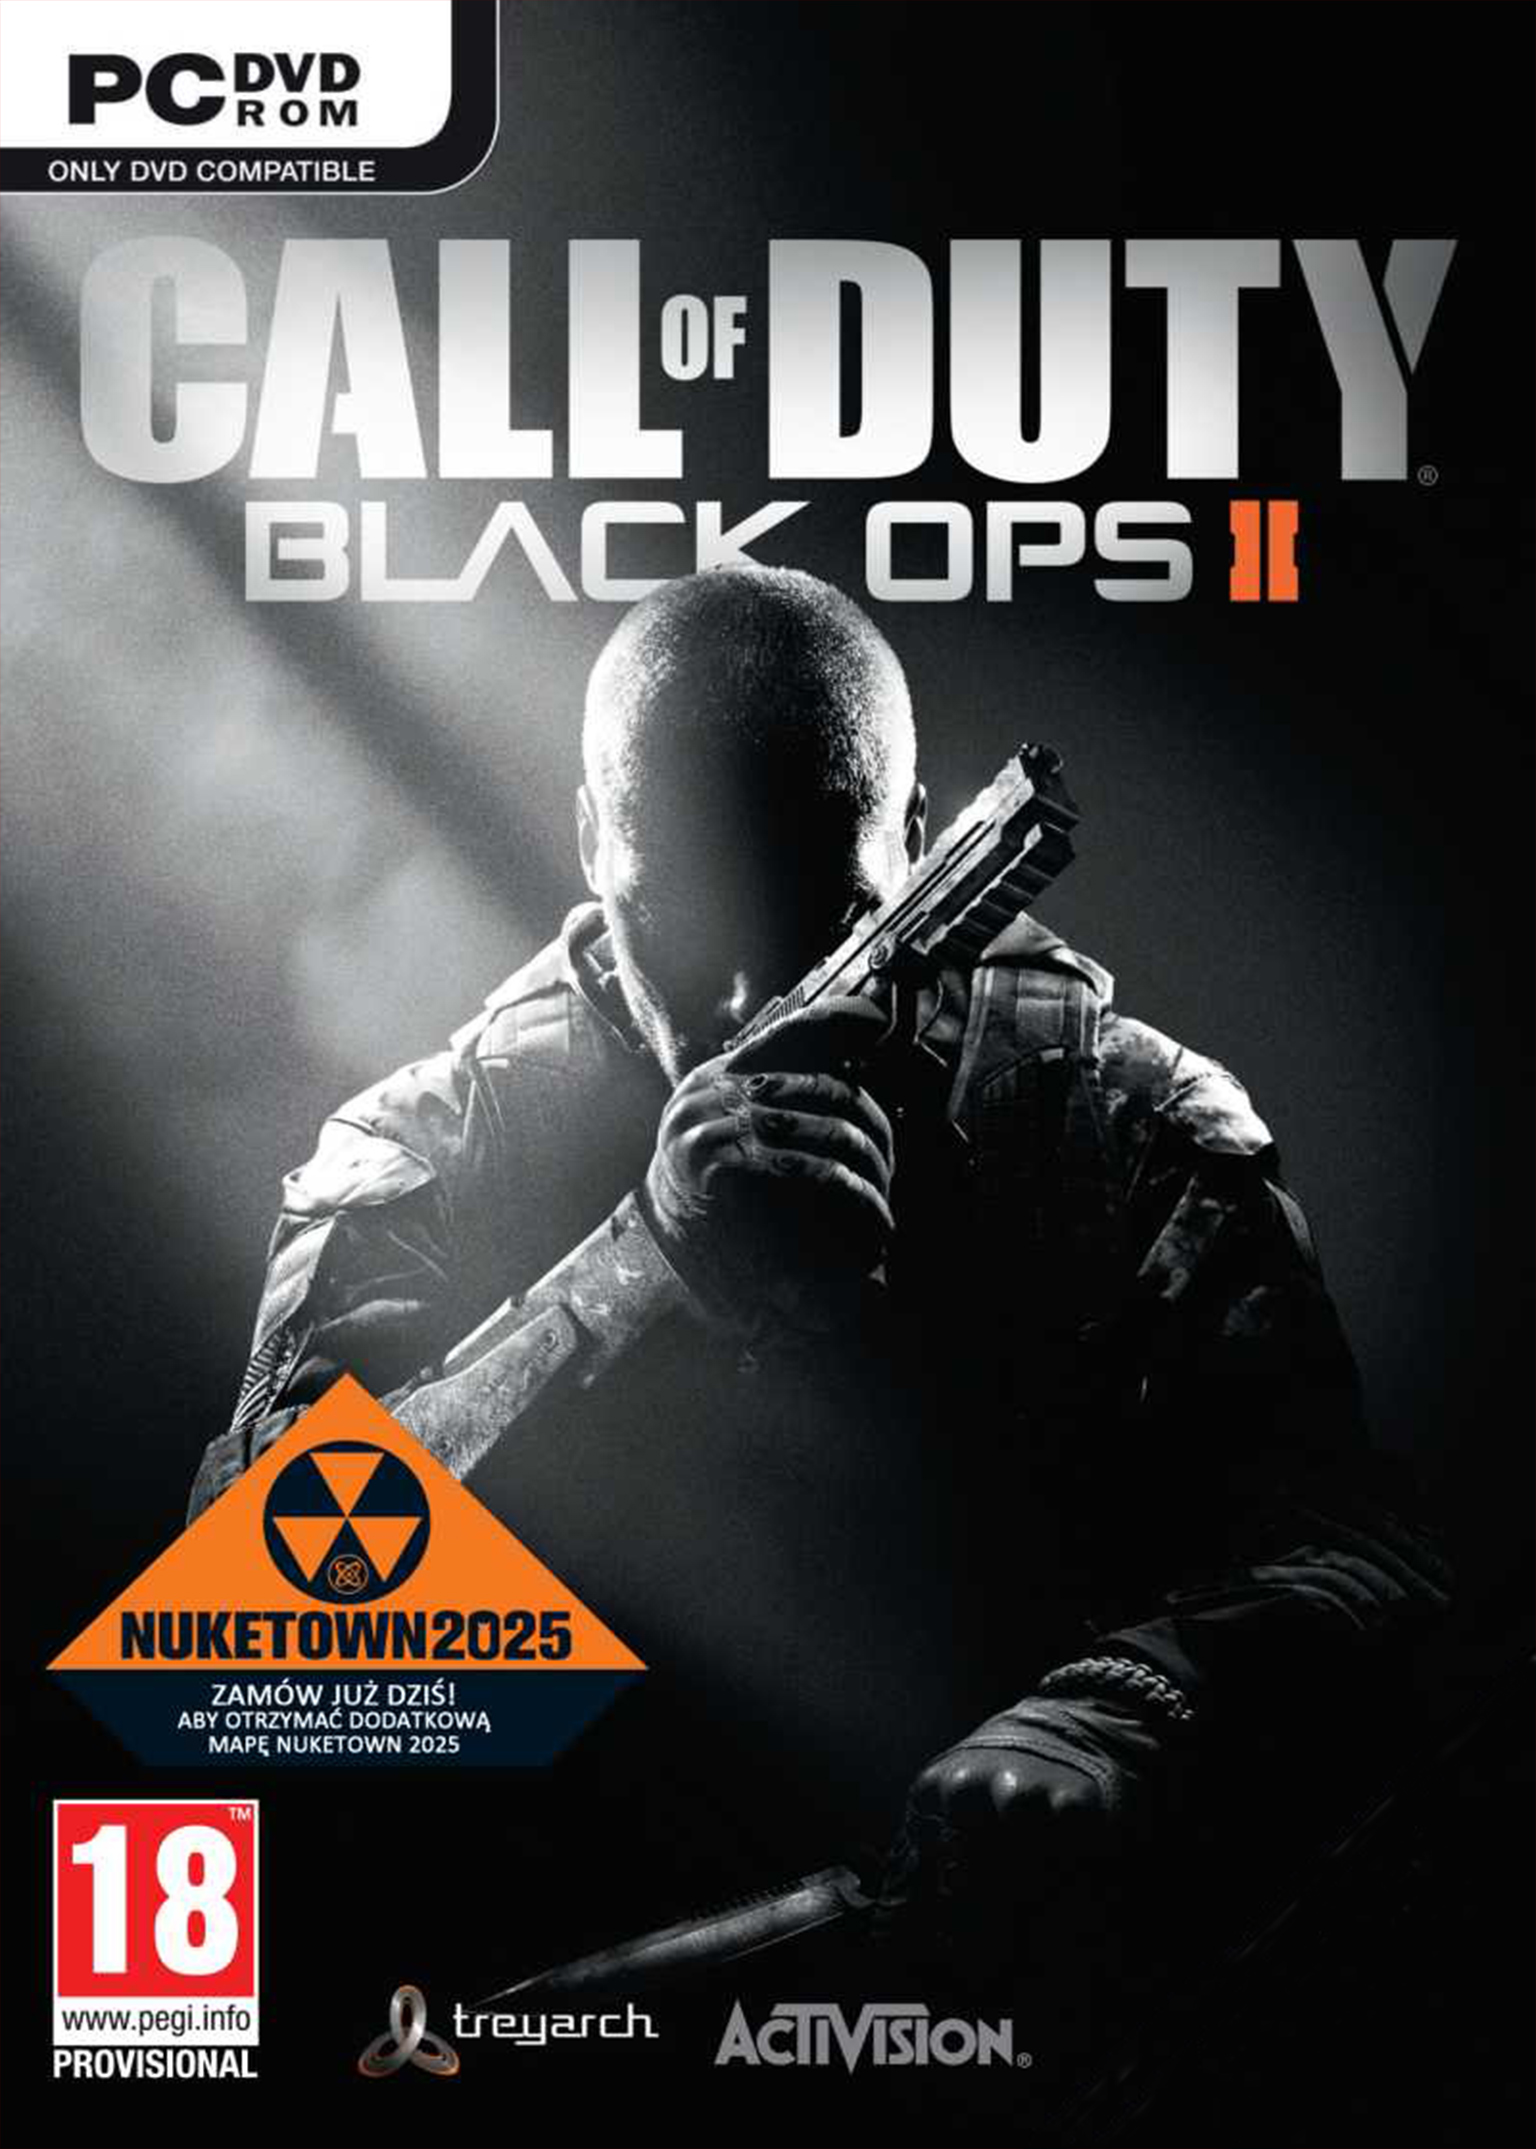 Call of Duty Black Ops 2 PC DVD - Wirtus.pl